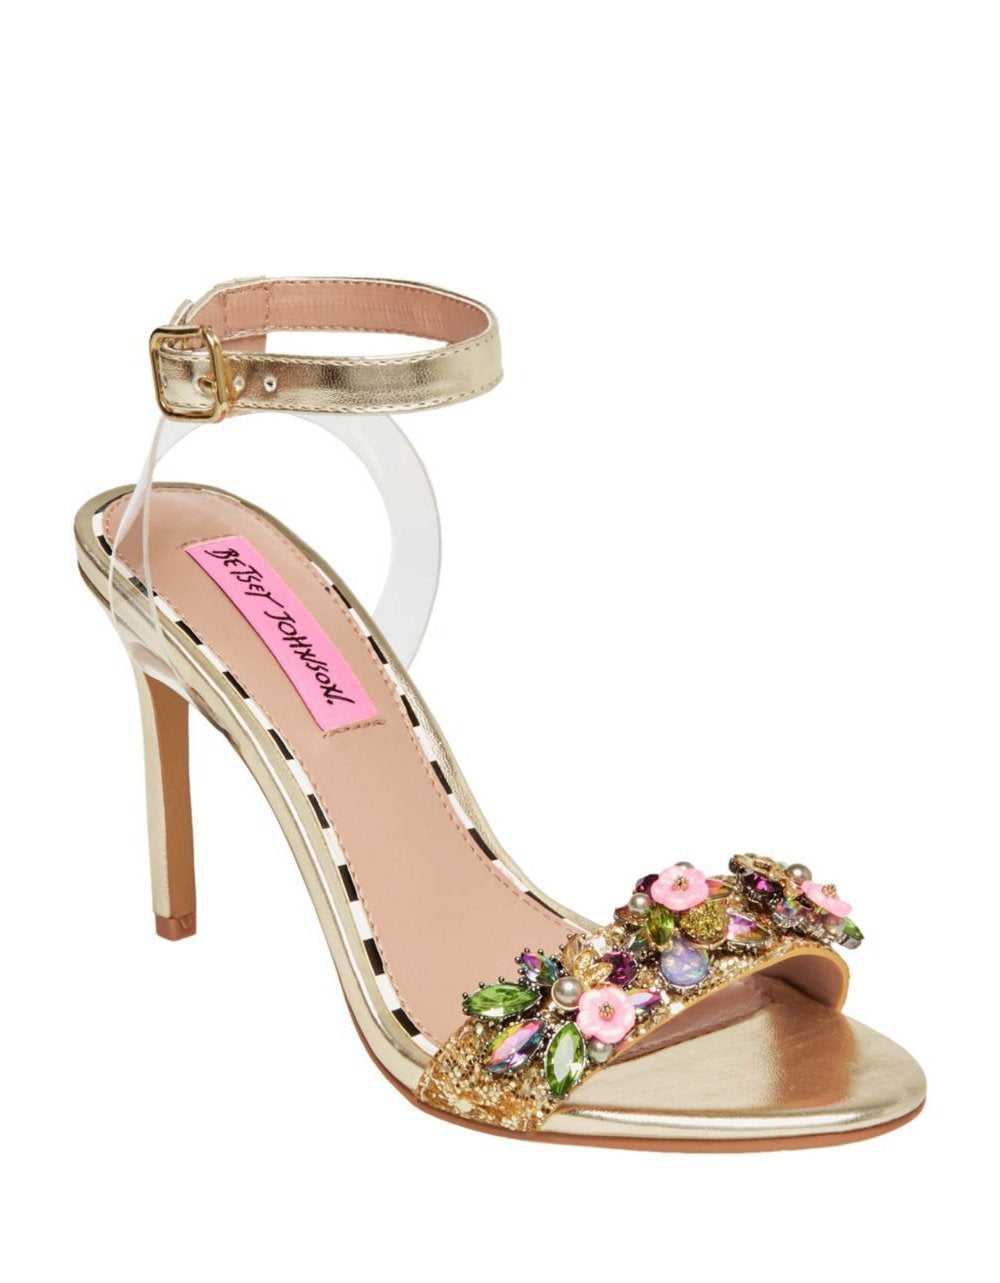 ALYNA GOLD MULTI - SHOES - Betsey Johnson